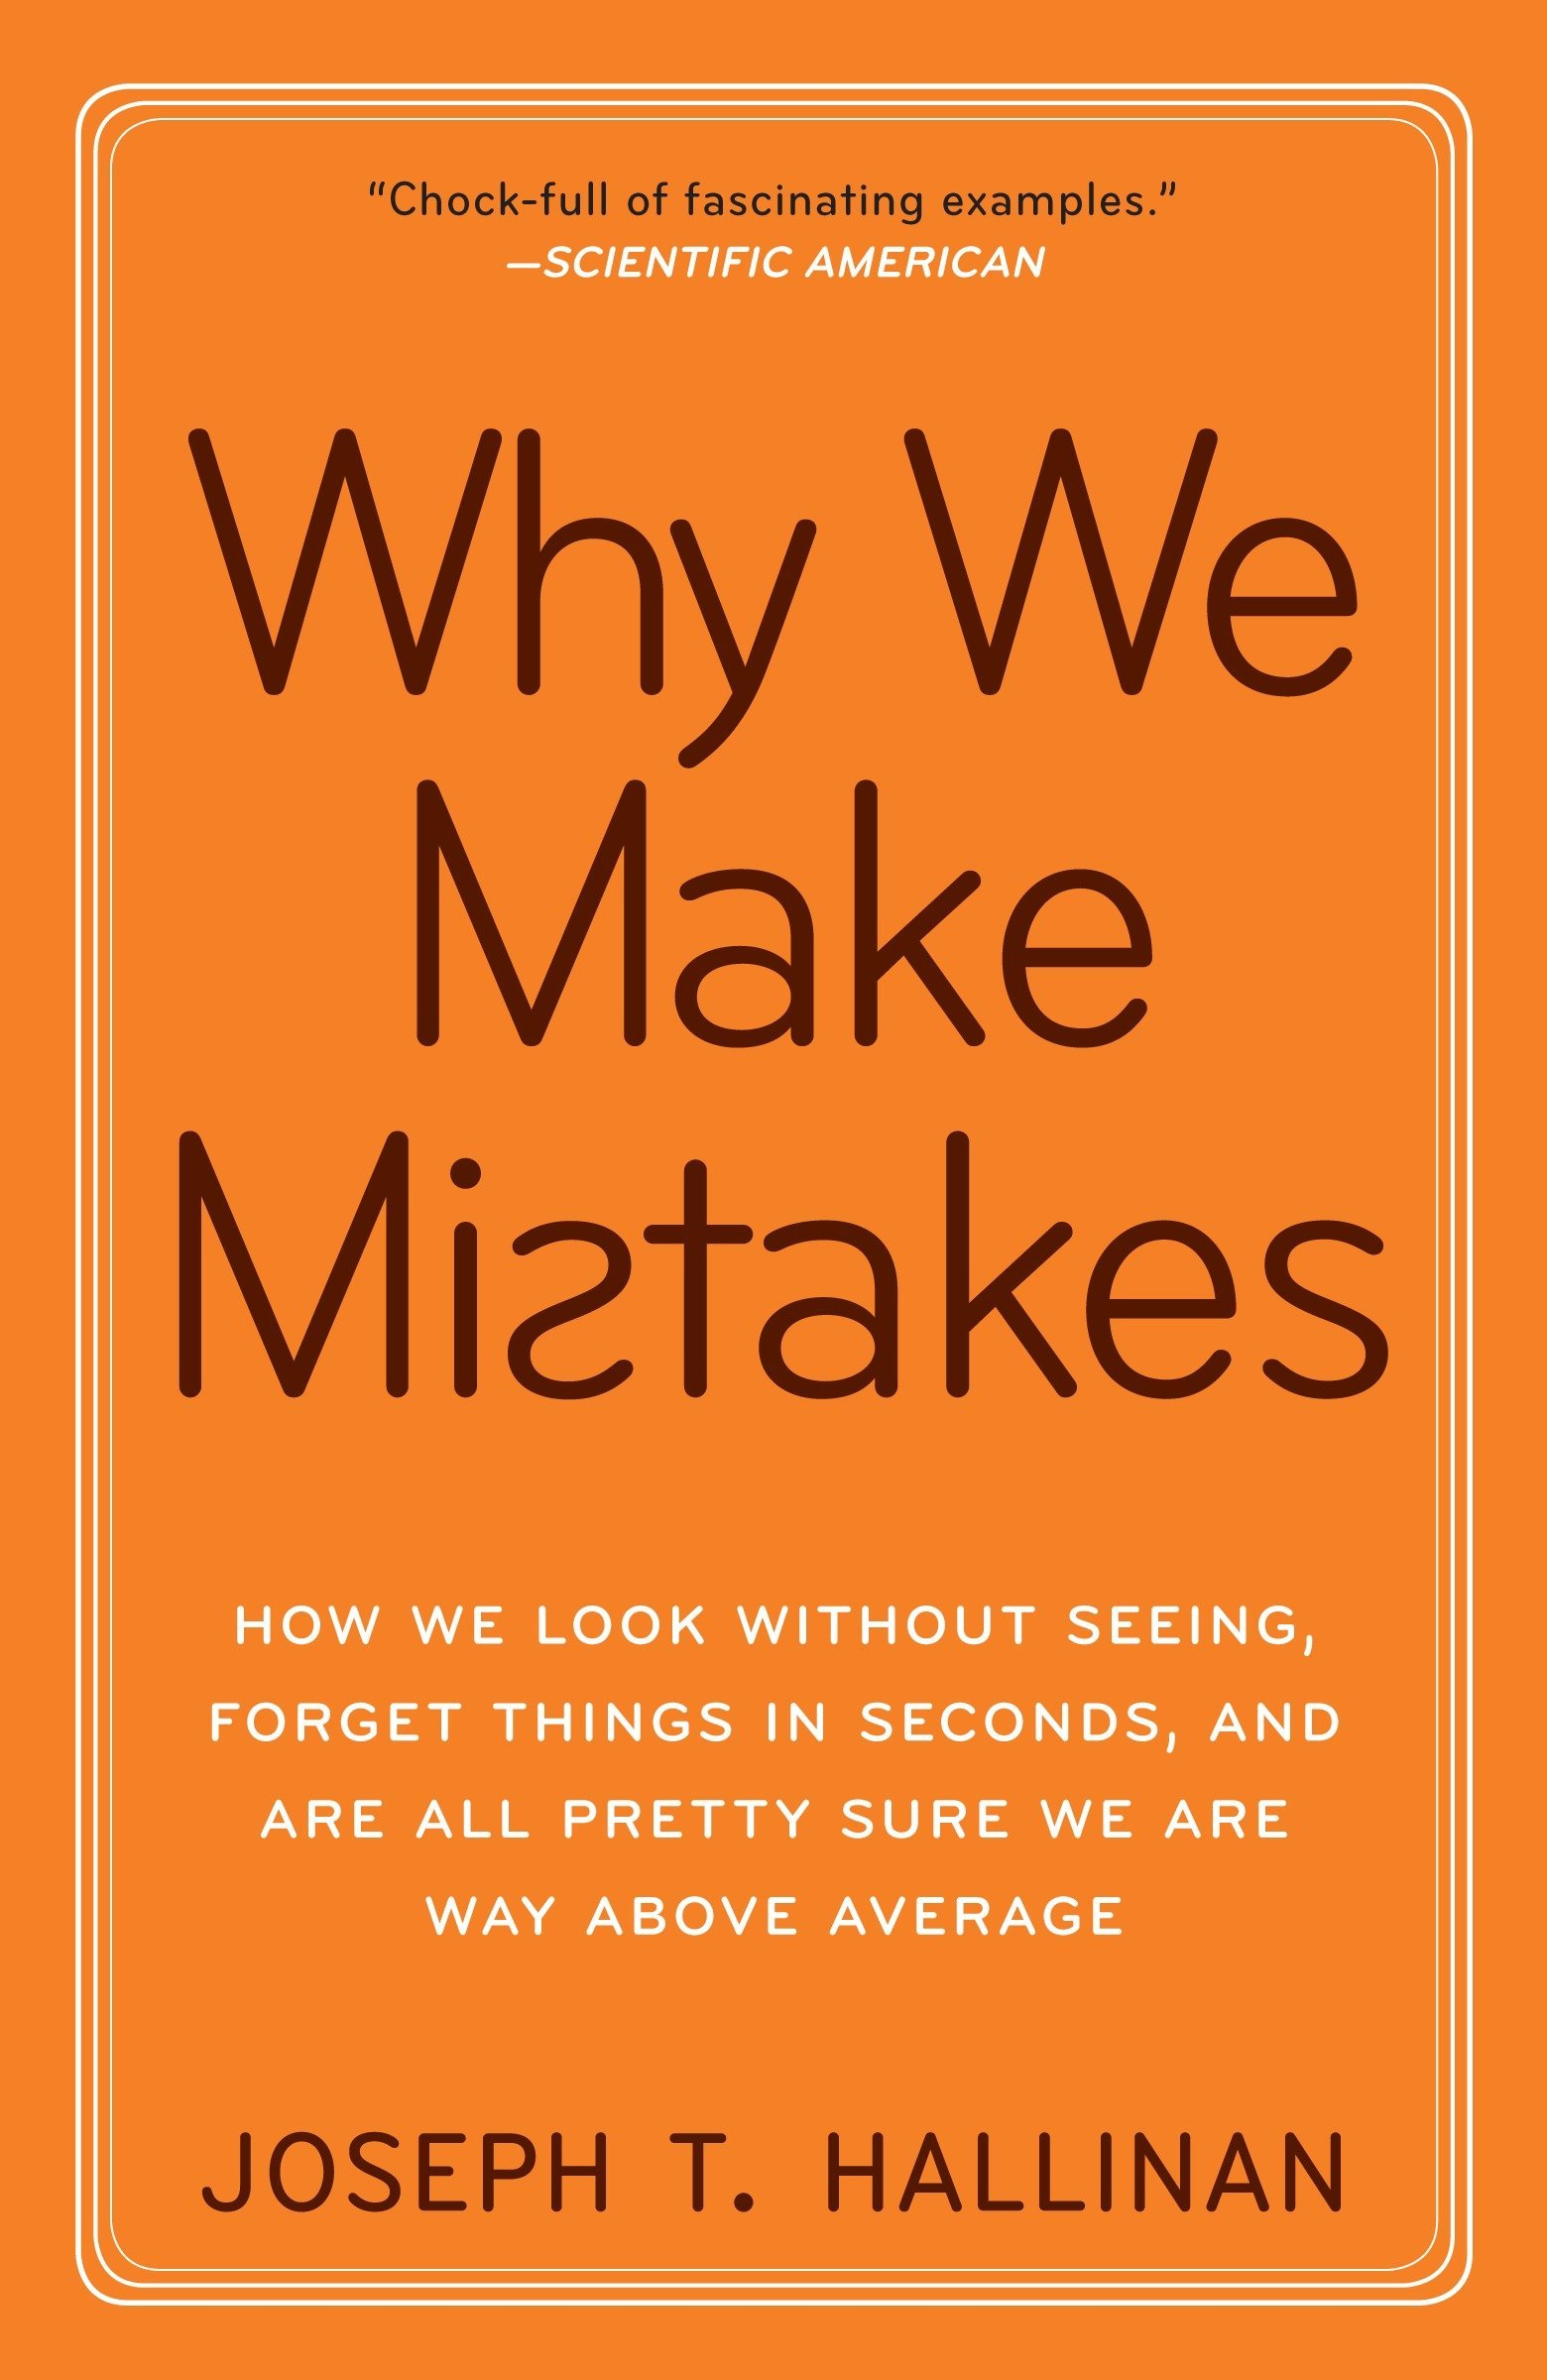 Download Why We Make Mistakes: How We Look Without Seeing, Forget Things In Seconds, And Are All Pretty Sure We Are Way Above Average 